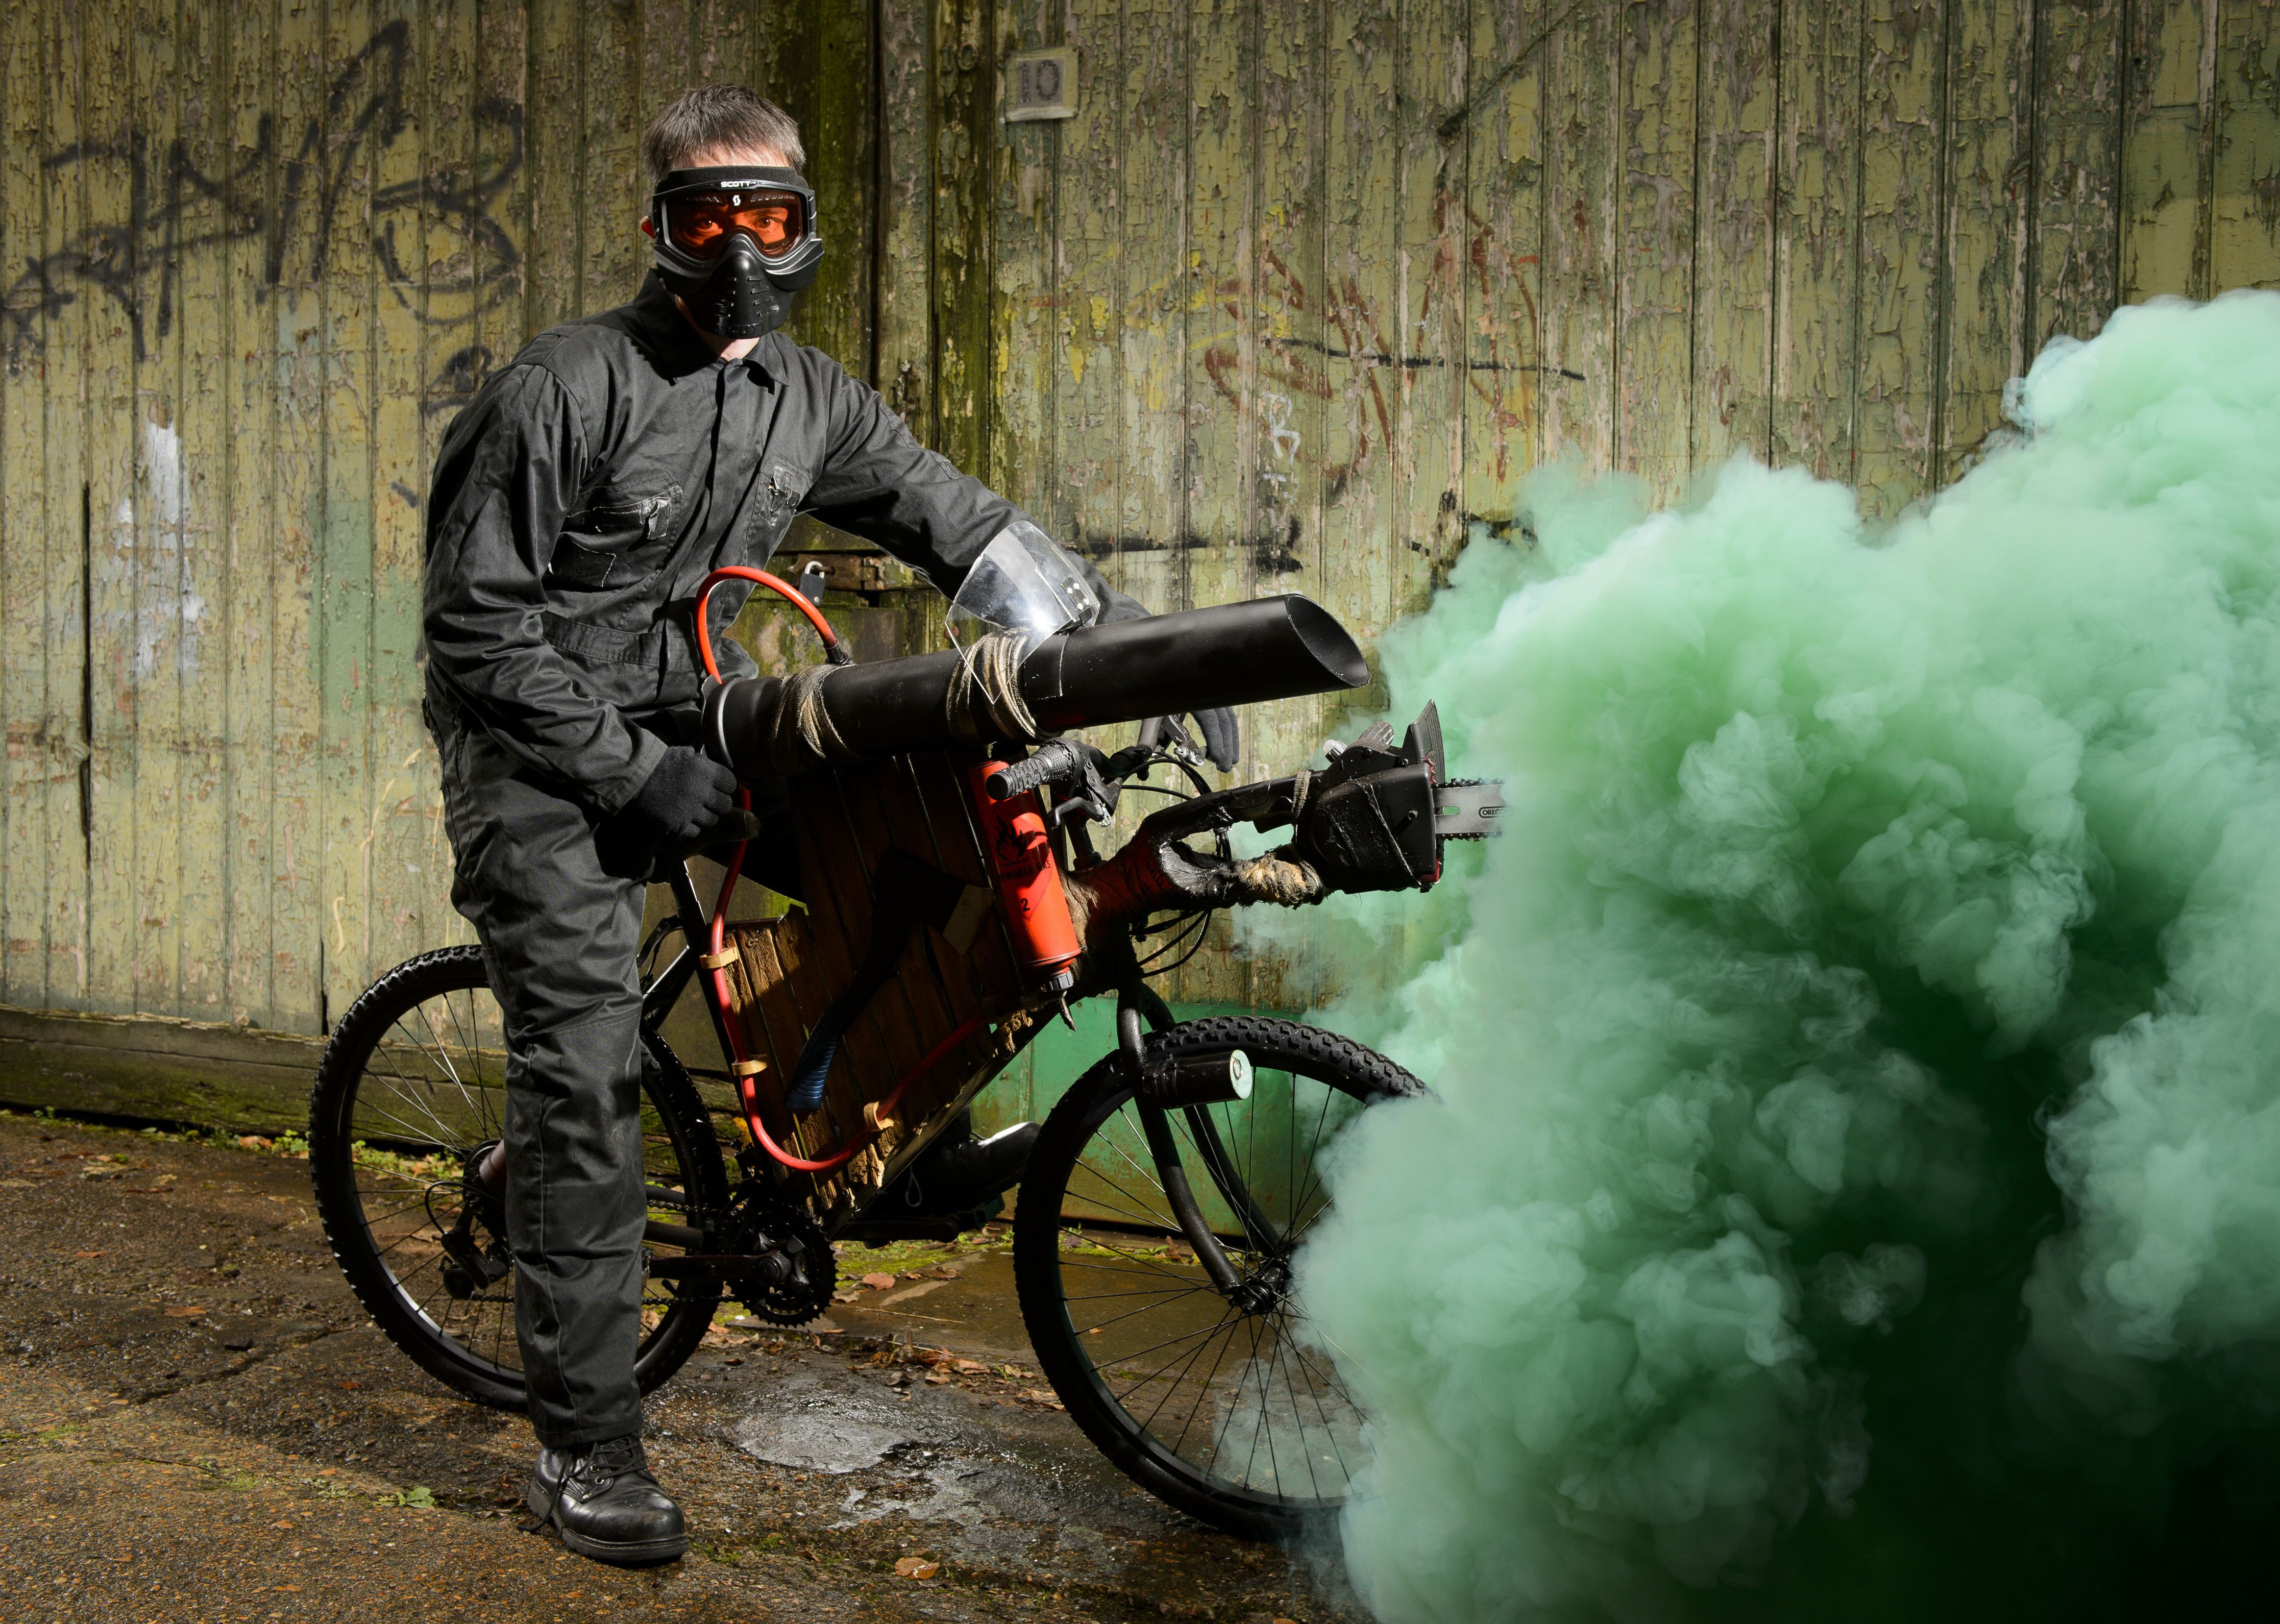 The bike comes with flamethrowers, a chainsaw and a splatter shield. (Picture: REX)